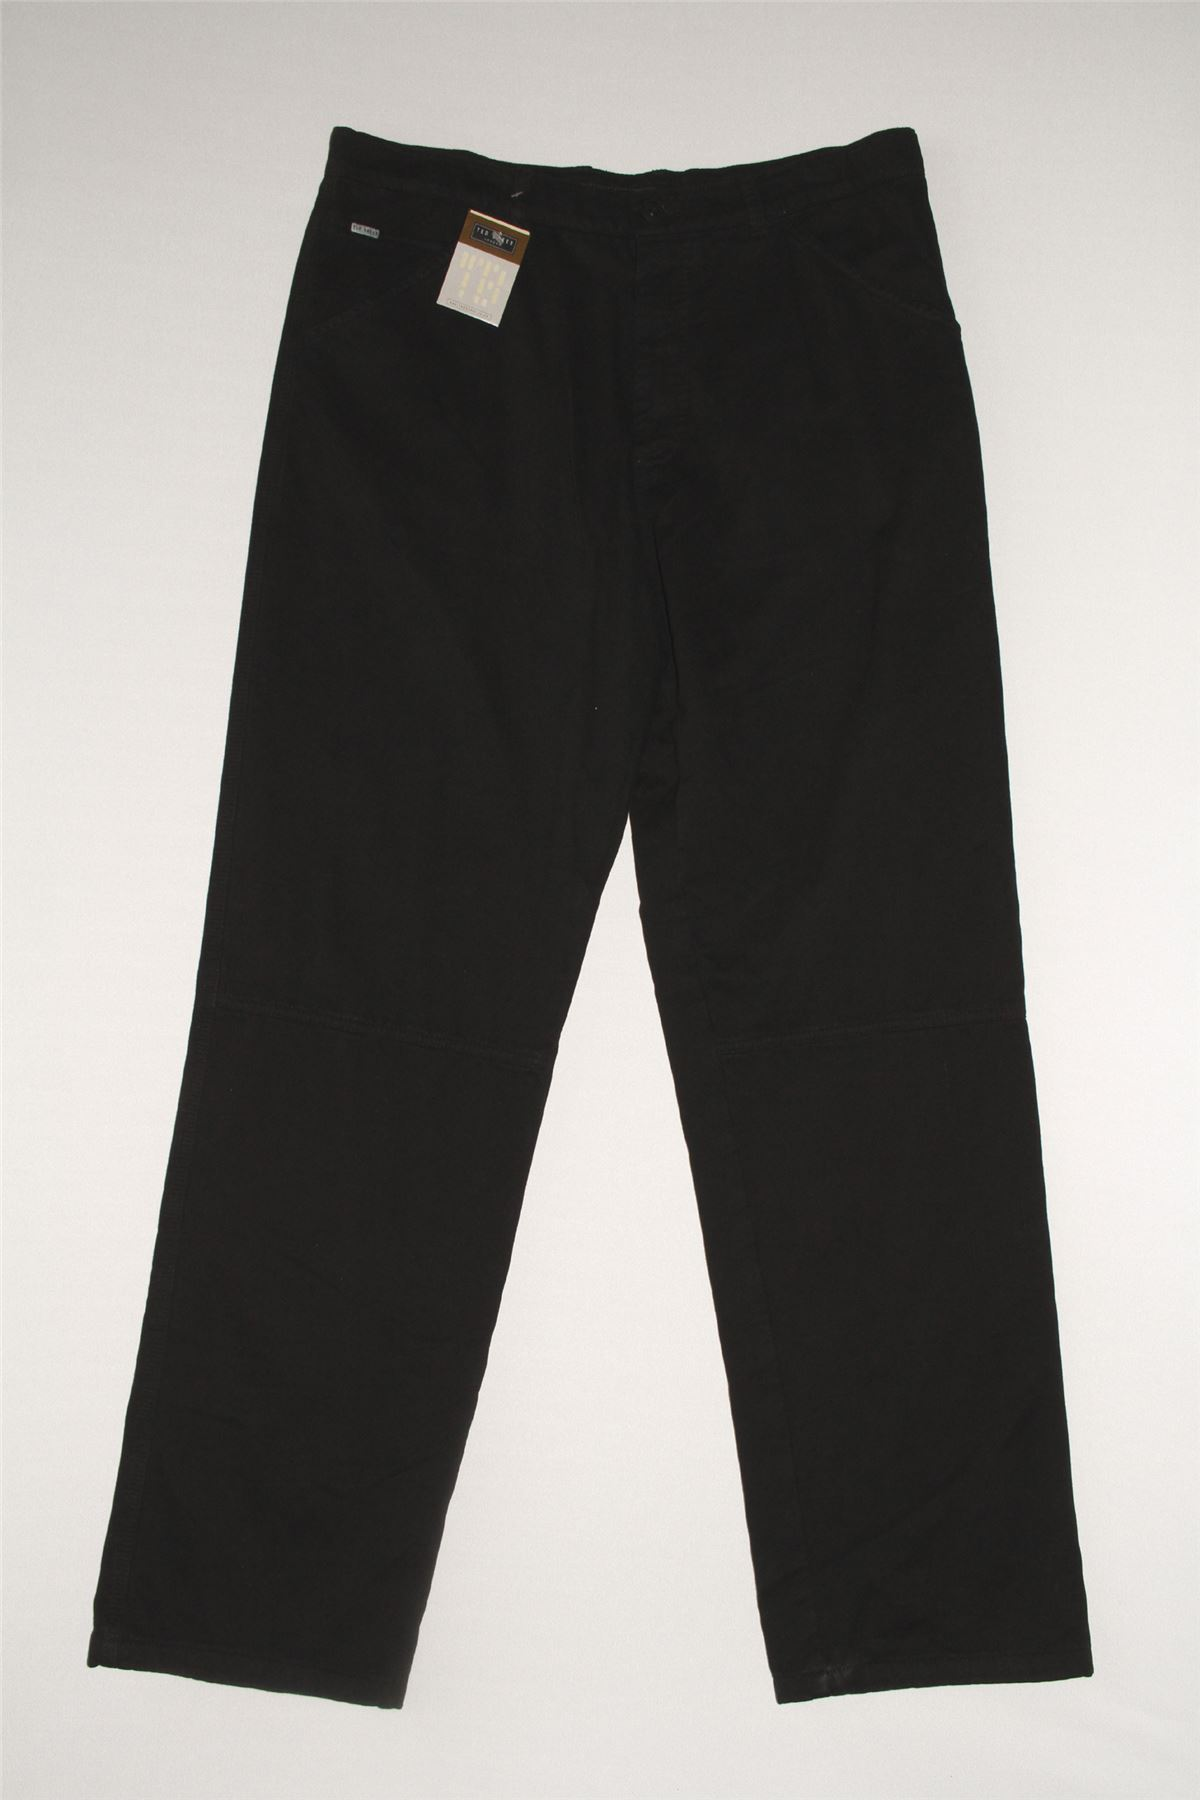 cd75a1420932 NEW WOMEN S TED BAKER CARGO BLACK TROUSERS JEANS CUFF LEG ALL SIZES RRP £70